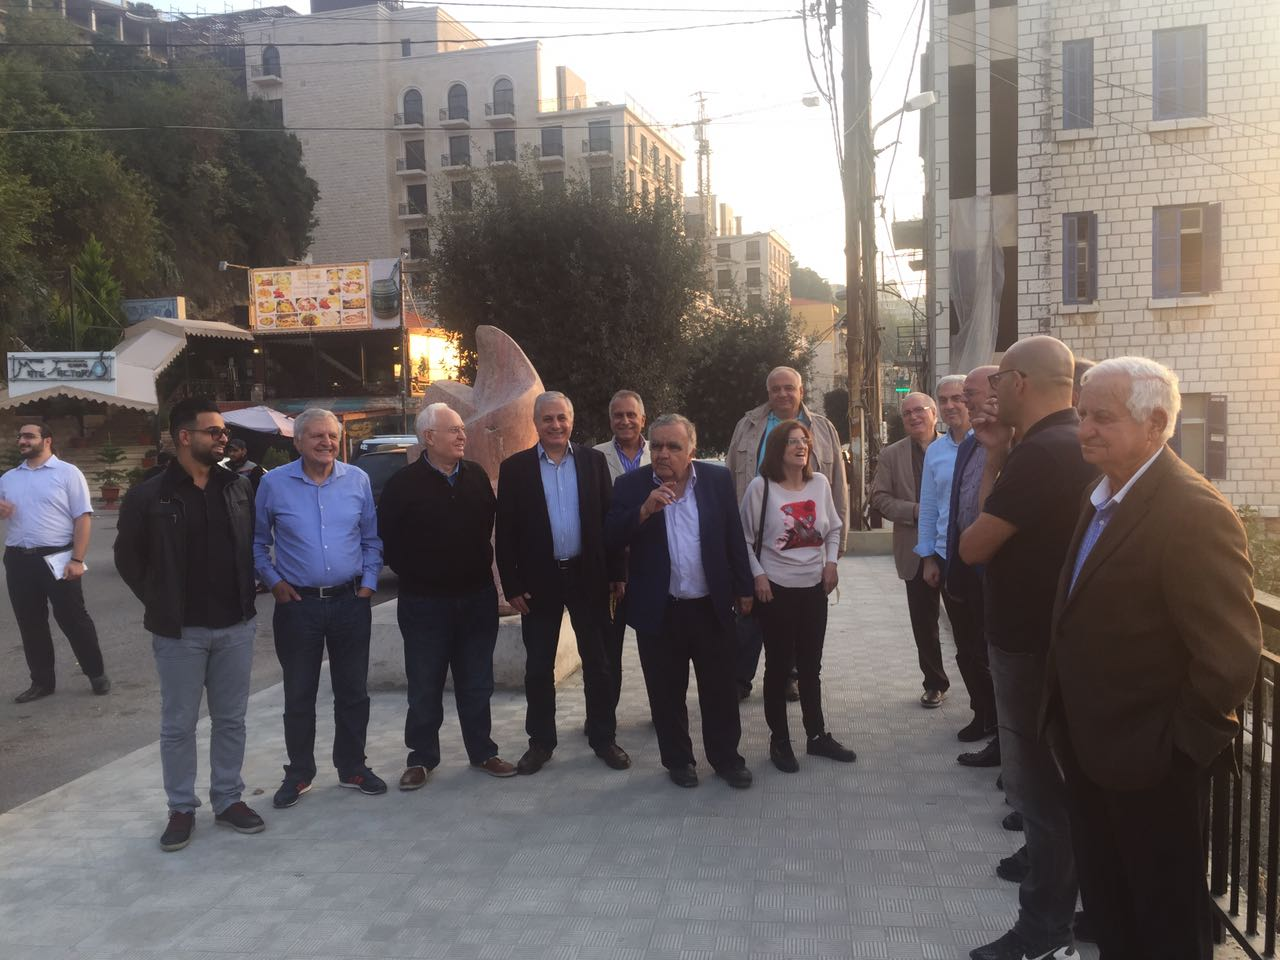 Mayor of Aley inspected the completed works in the city